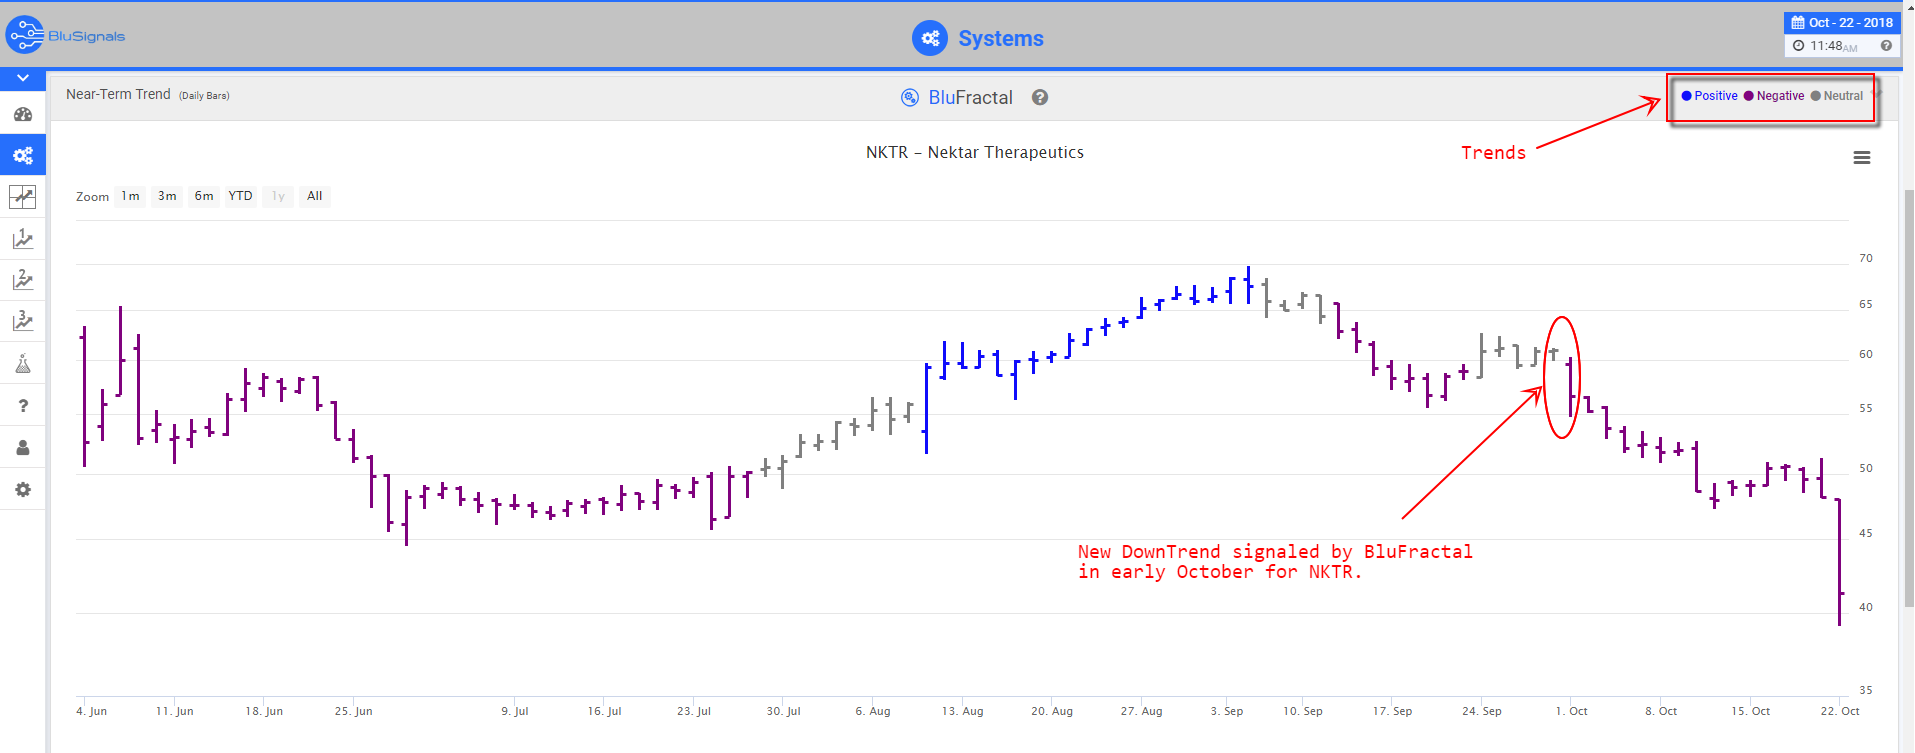 NKTR trade signal predictions